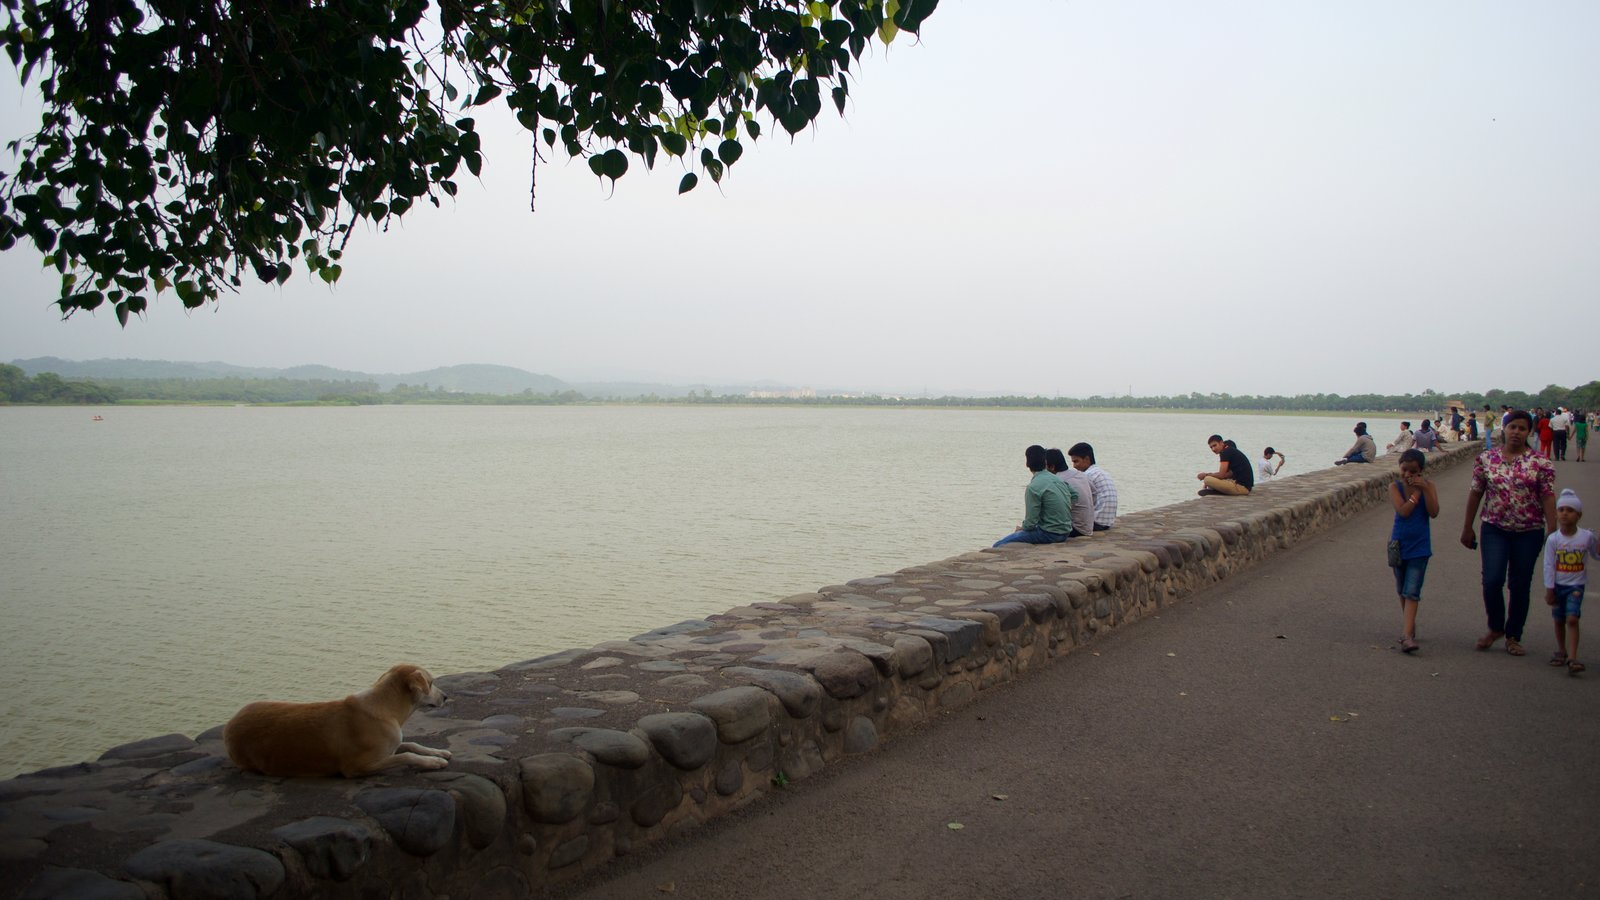 Sukhna Lake featuring a lake or waterhole as well as a small group of people